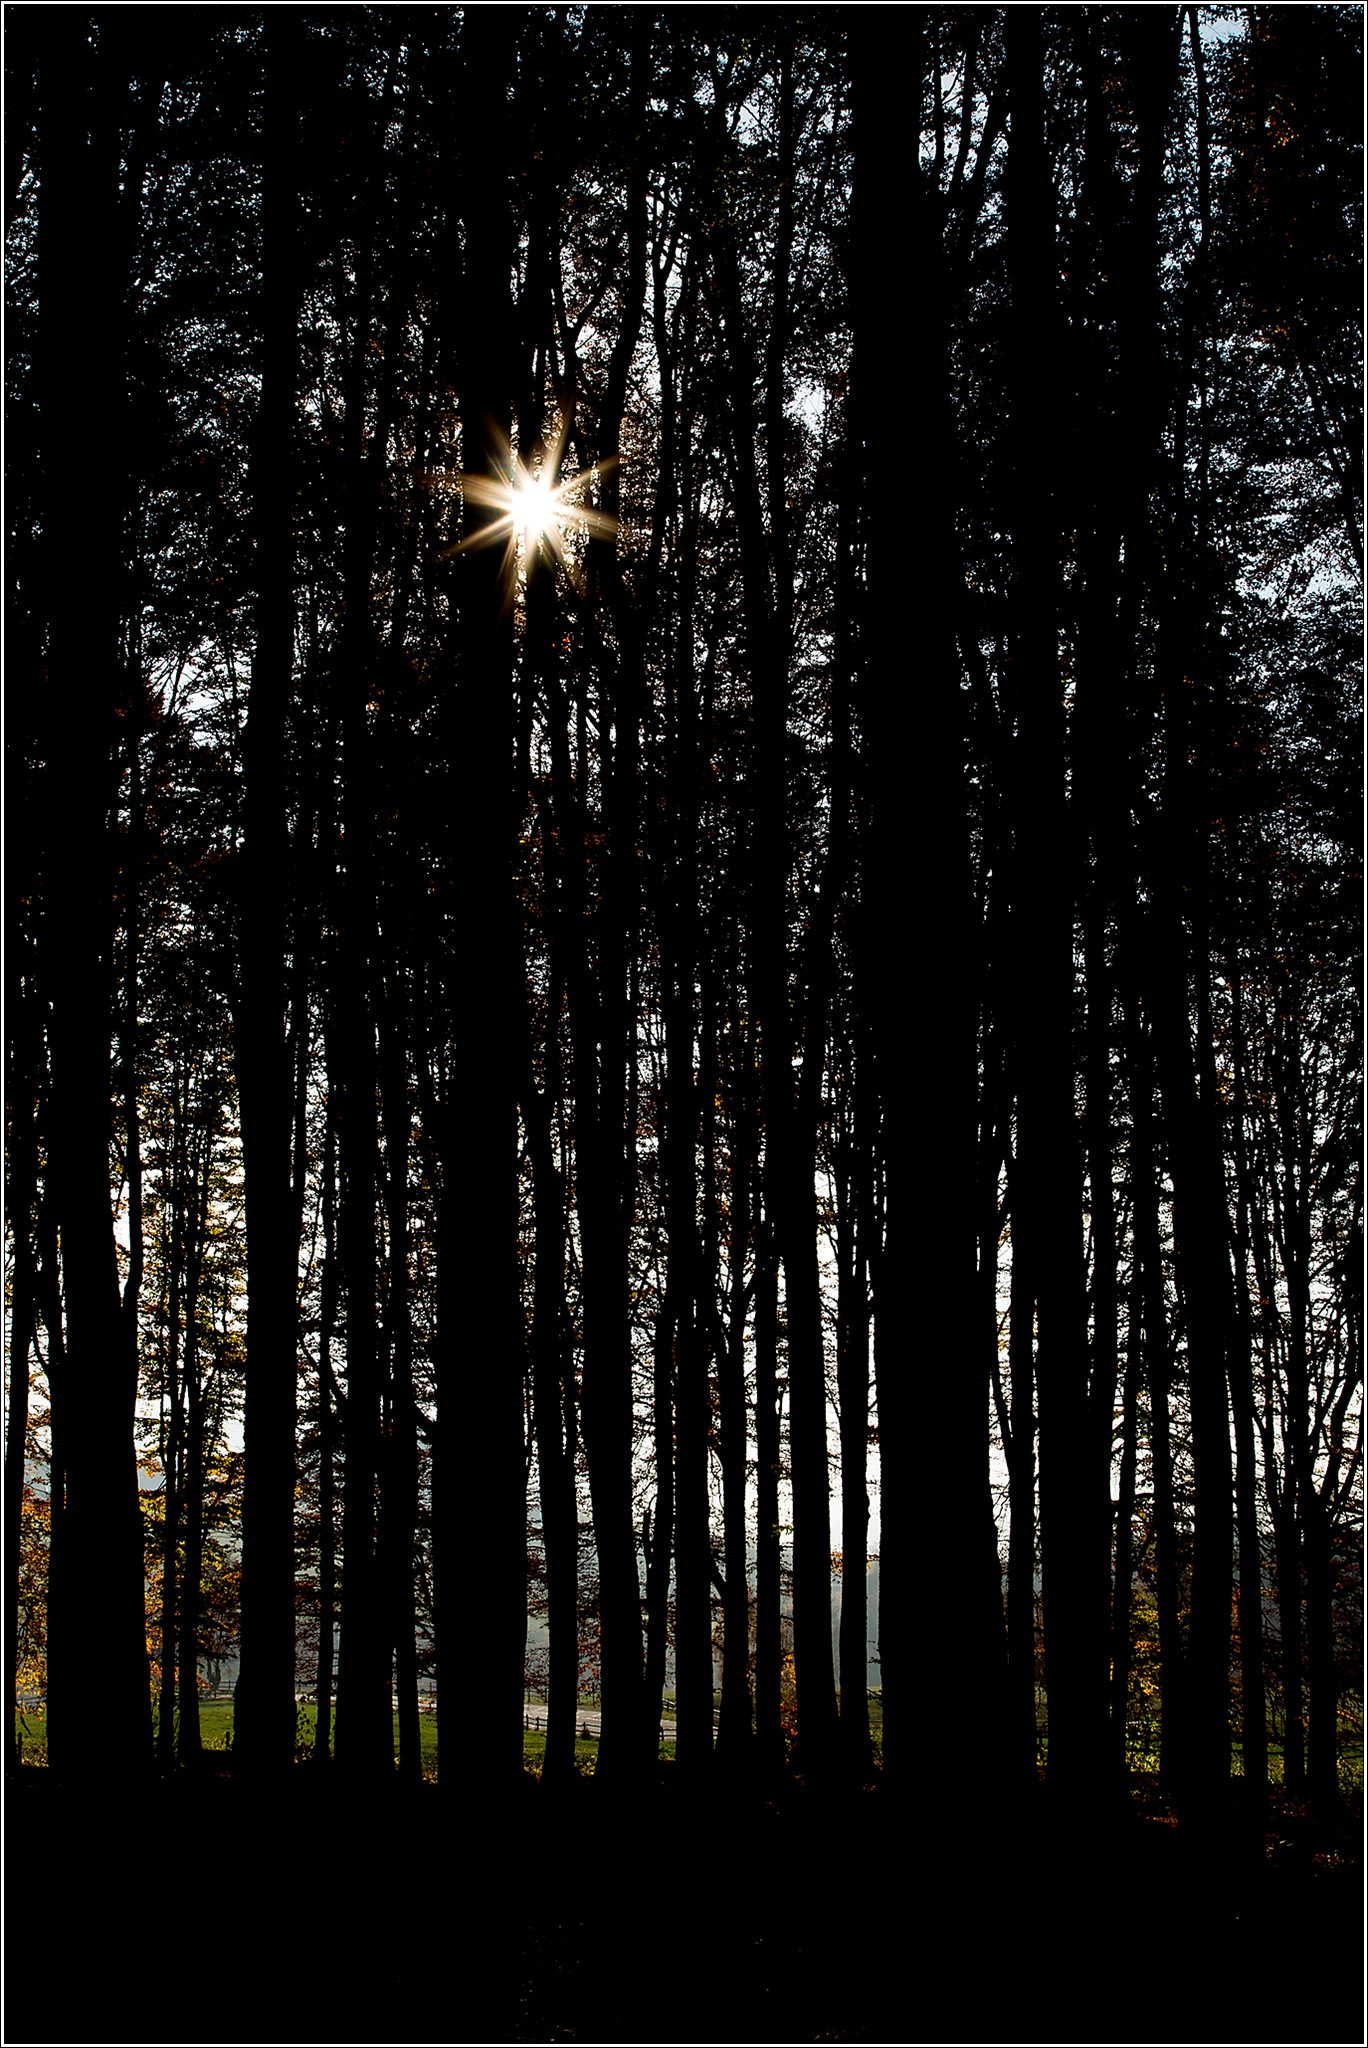 The sun behind the trees by Diego Turel